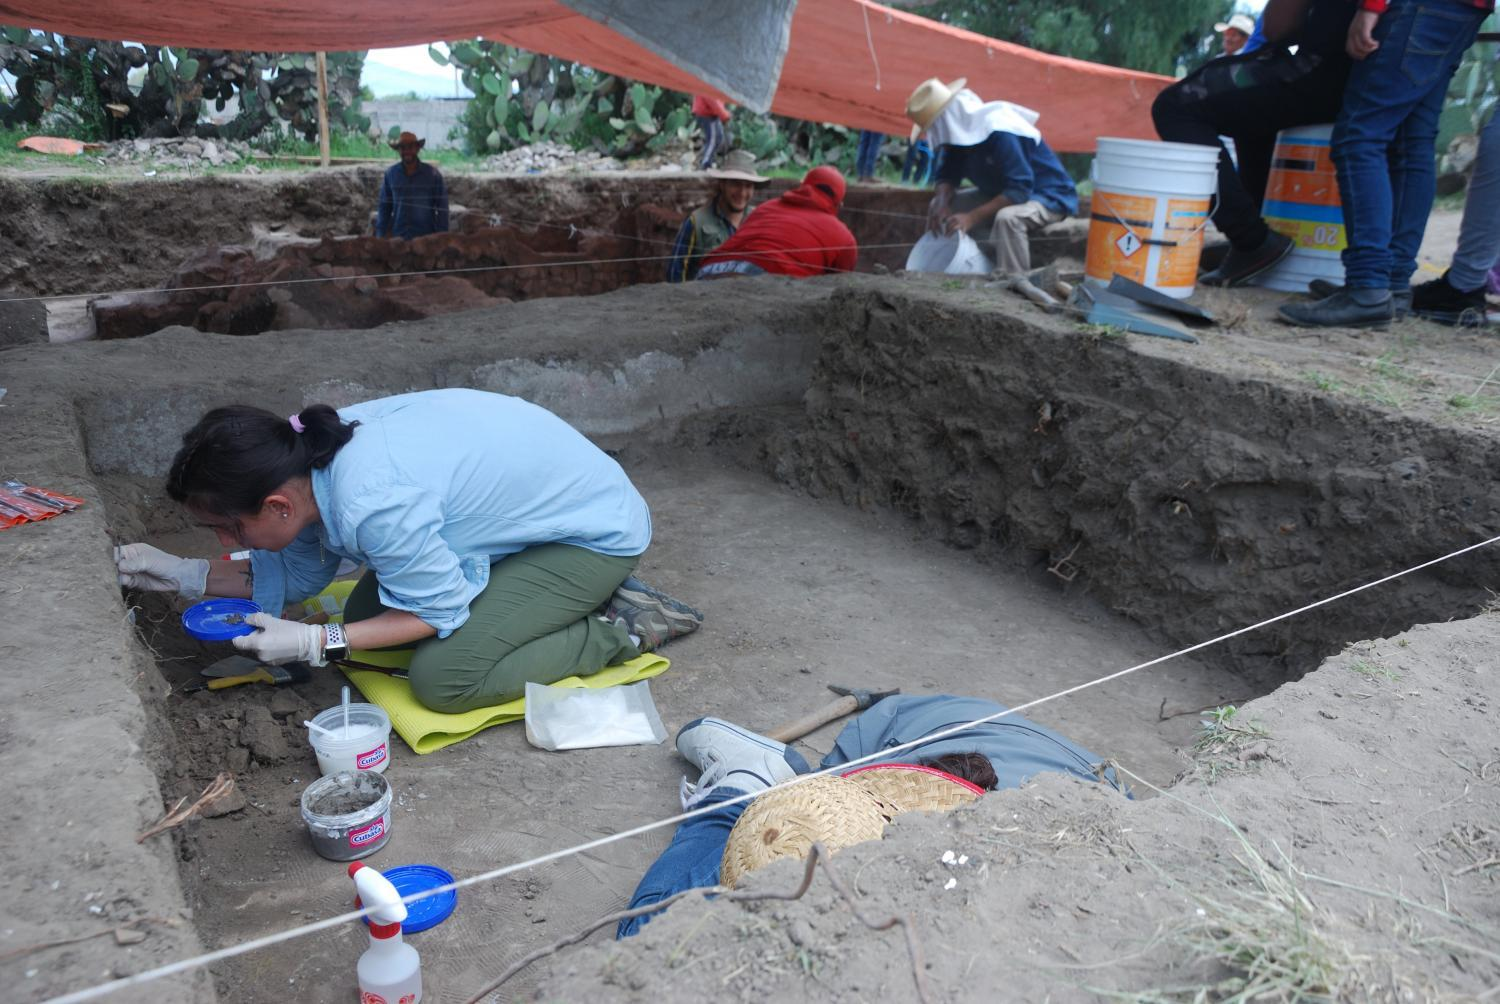 Daniela Hernandez Sariñana works to preserve artifacts found in an archeological dig in the ancient city of Teotihuacan.